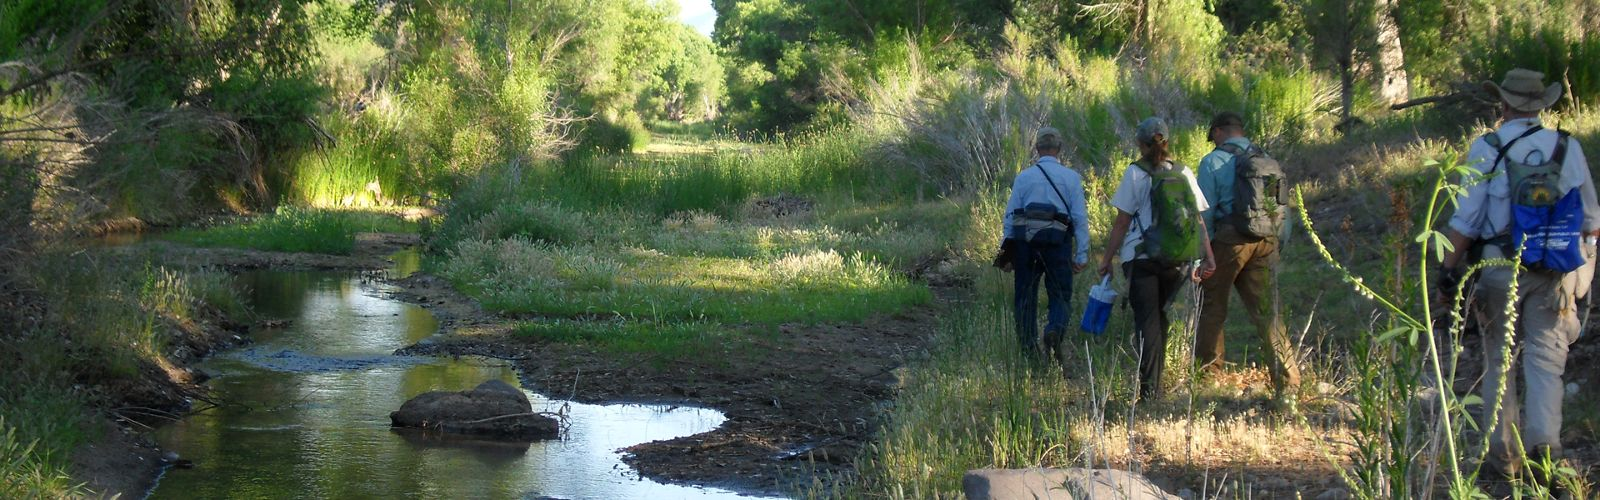 Researchers conduct wet-dry mapping in the San Pedro River in Arizona.